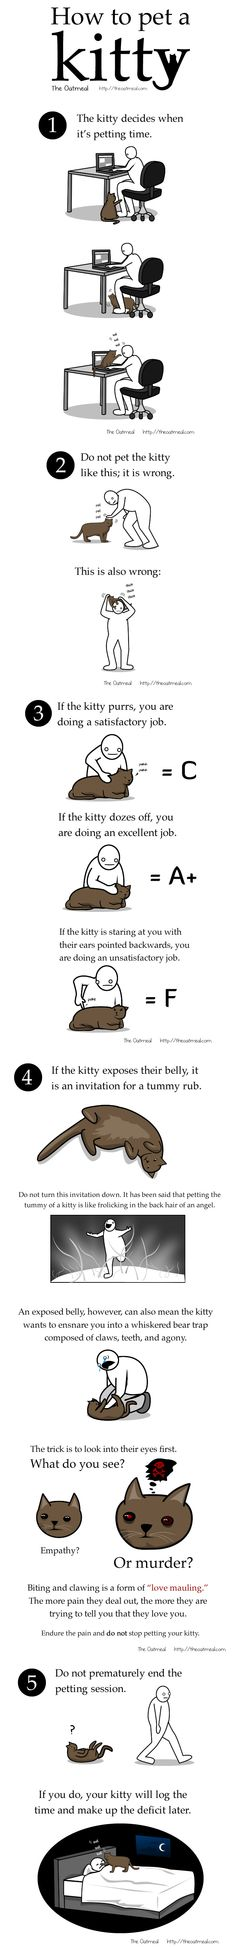 How to pet a kitty. Haha this reminds  me of my dad and our cats!